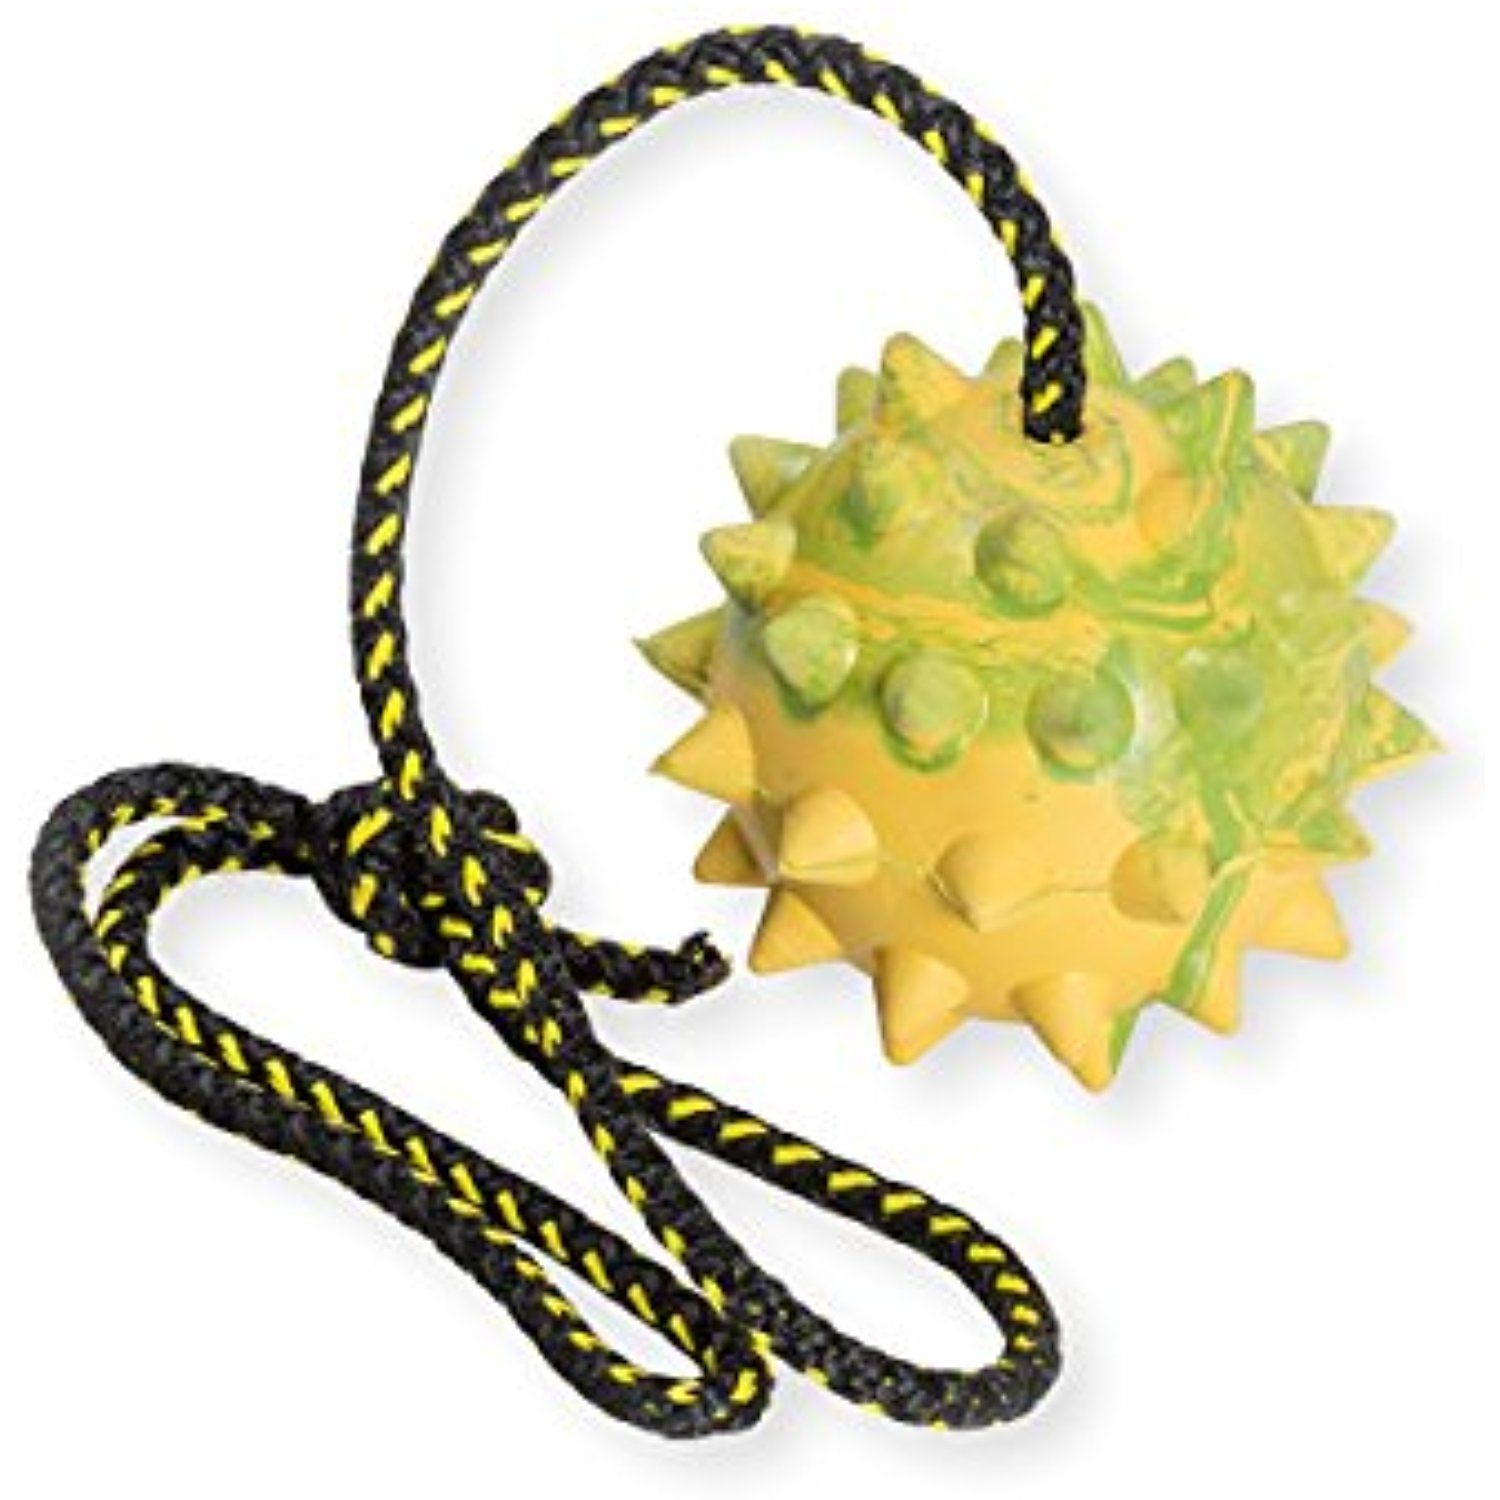 Dog Rubber Spike Ball On Rope Toy Training Reward Fetch